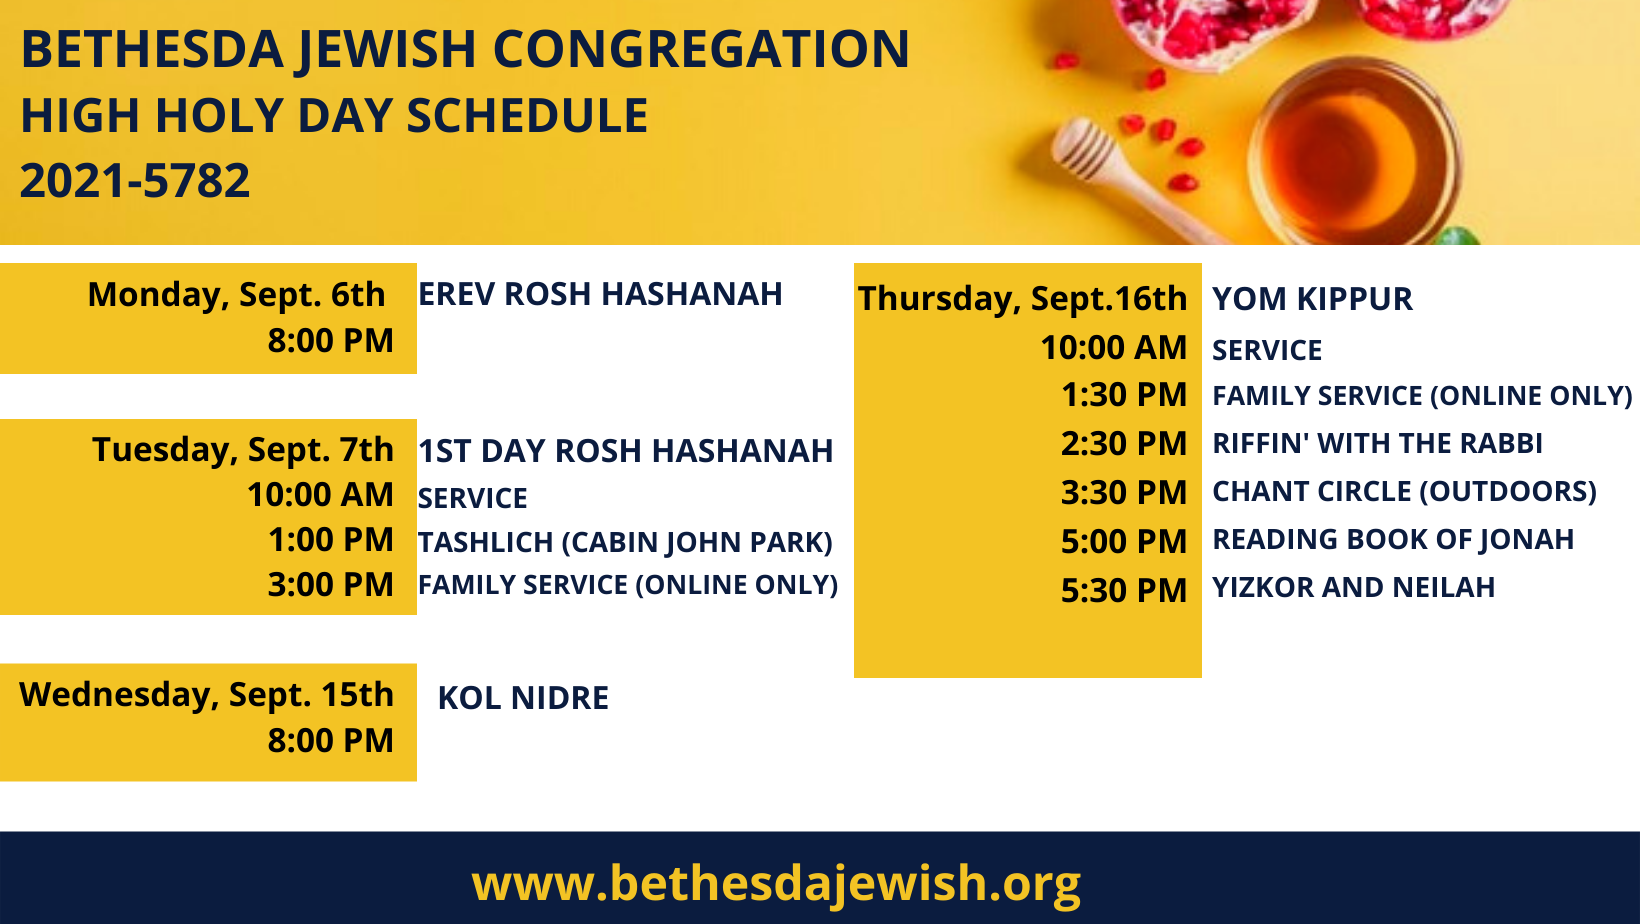 """<a href=""""https://www.bethesdajewish.org/form/high-holy-days-tickets-nm.html""""                                     target=""""_blank"""">                                                                 <span class=""""slider_title"""">                                     High Holy Days Schedule 2021                                </span>                                                                 </a>                                                                                                                                                                                       <span class=""""slider_description"""">Full list of times for High Holy Days at BJC. Come pray with us! Tickets are available for purchase. Services will also be livestreamed.  We are looking foward to meaningful-and safe- High Holy Days.</span>"""